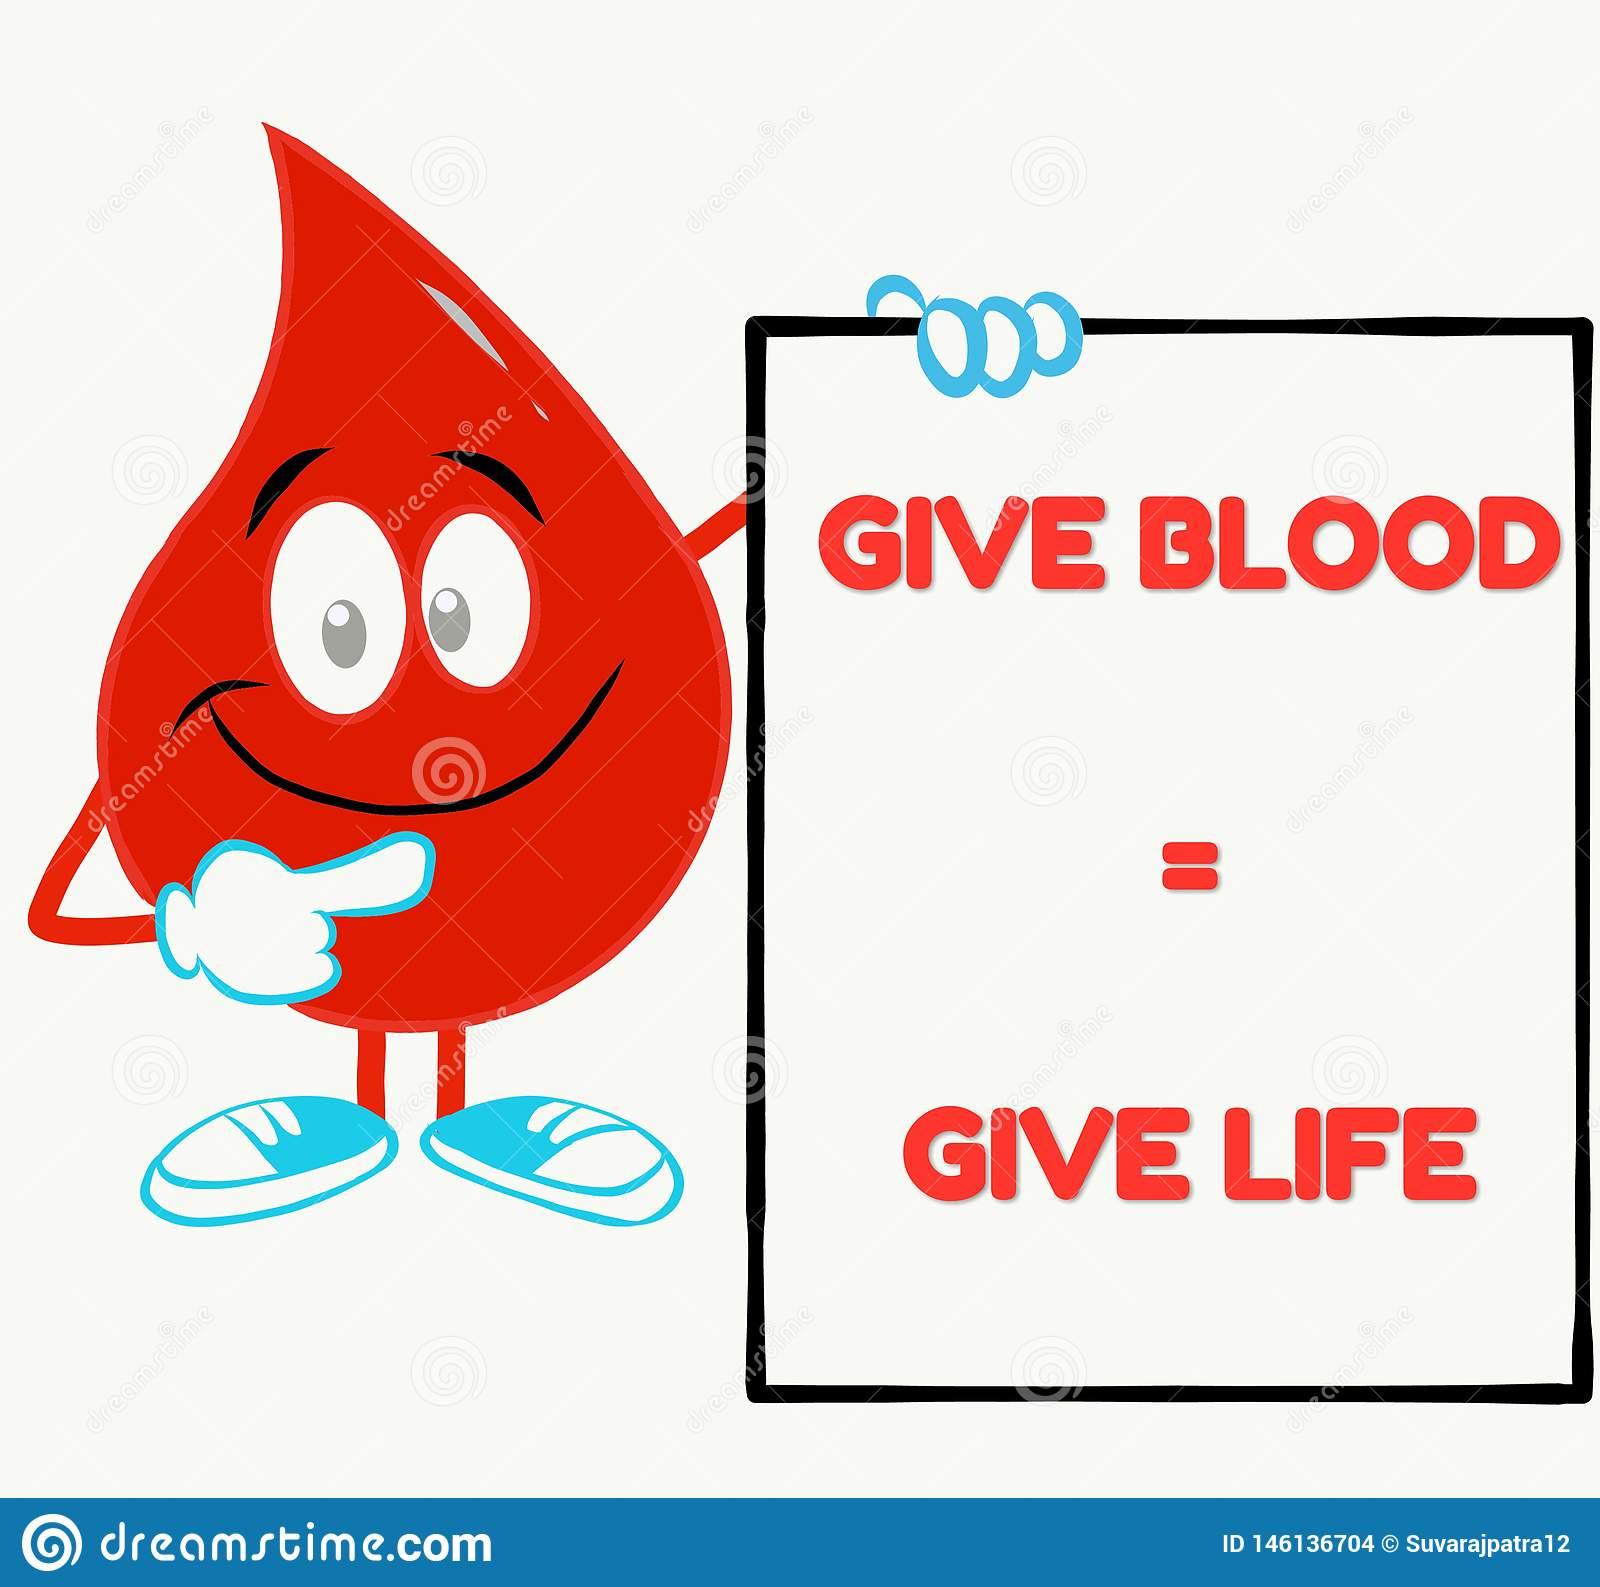 perfect blood donation inspirational quote